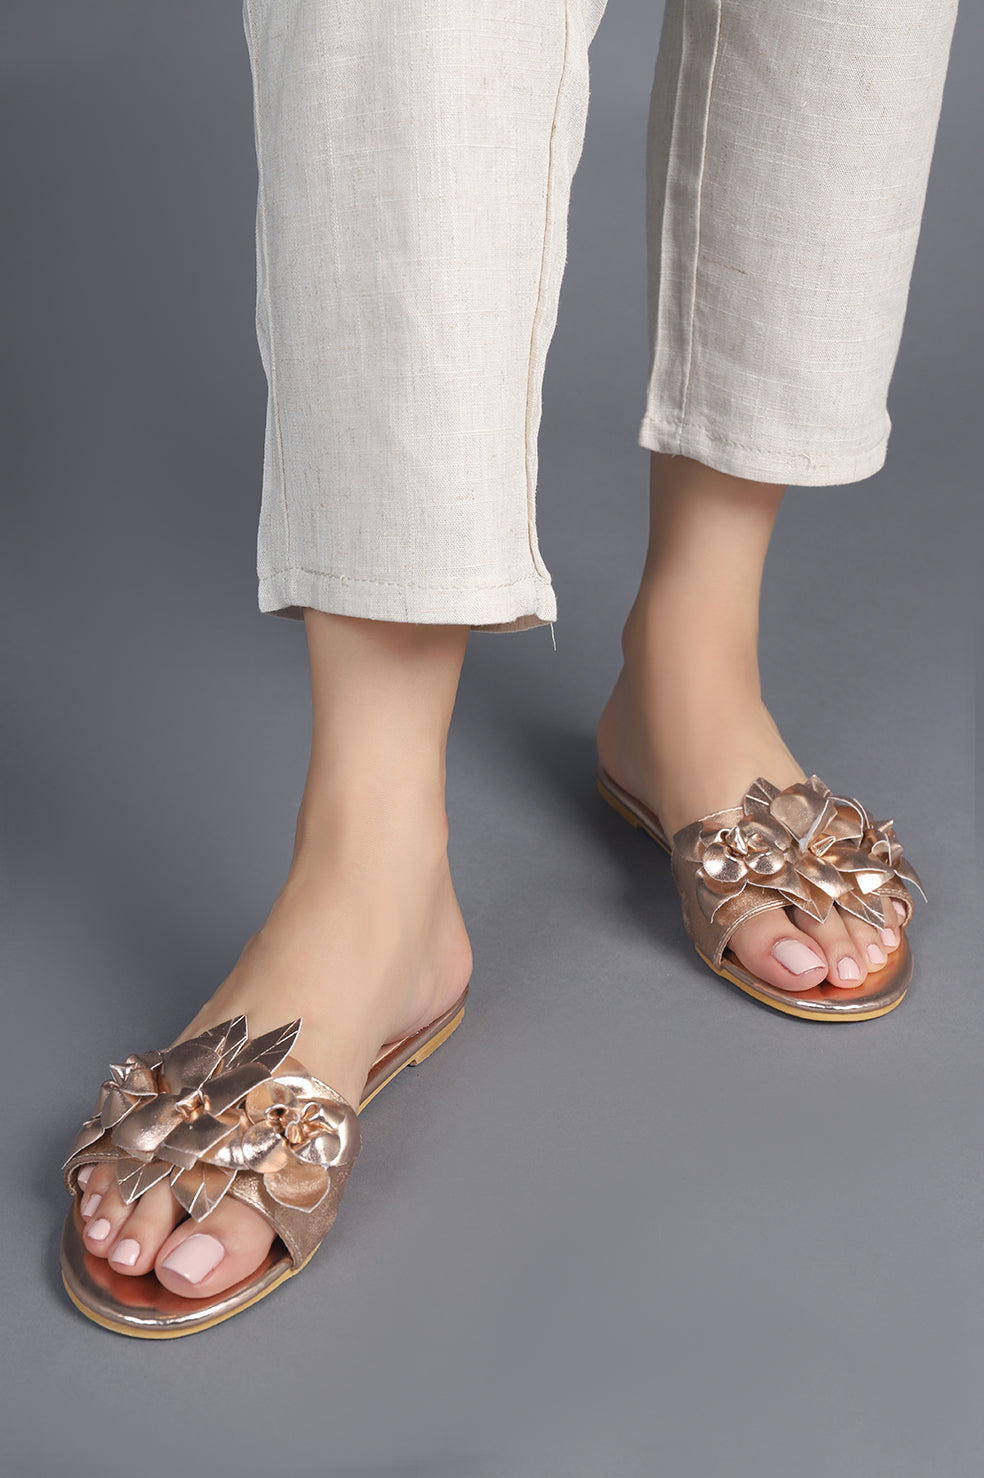 FLORAL ORNATE FLATS-CHAMPAGNE